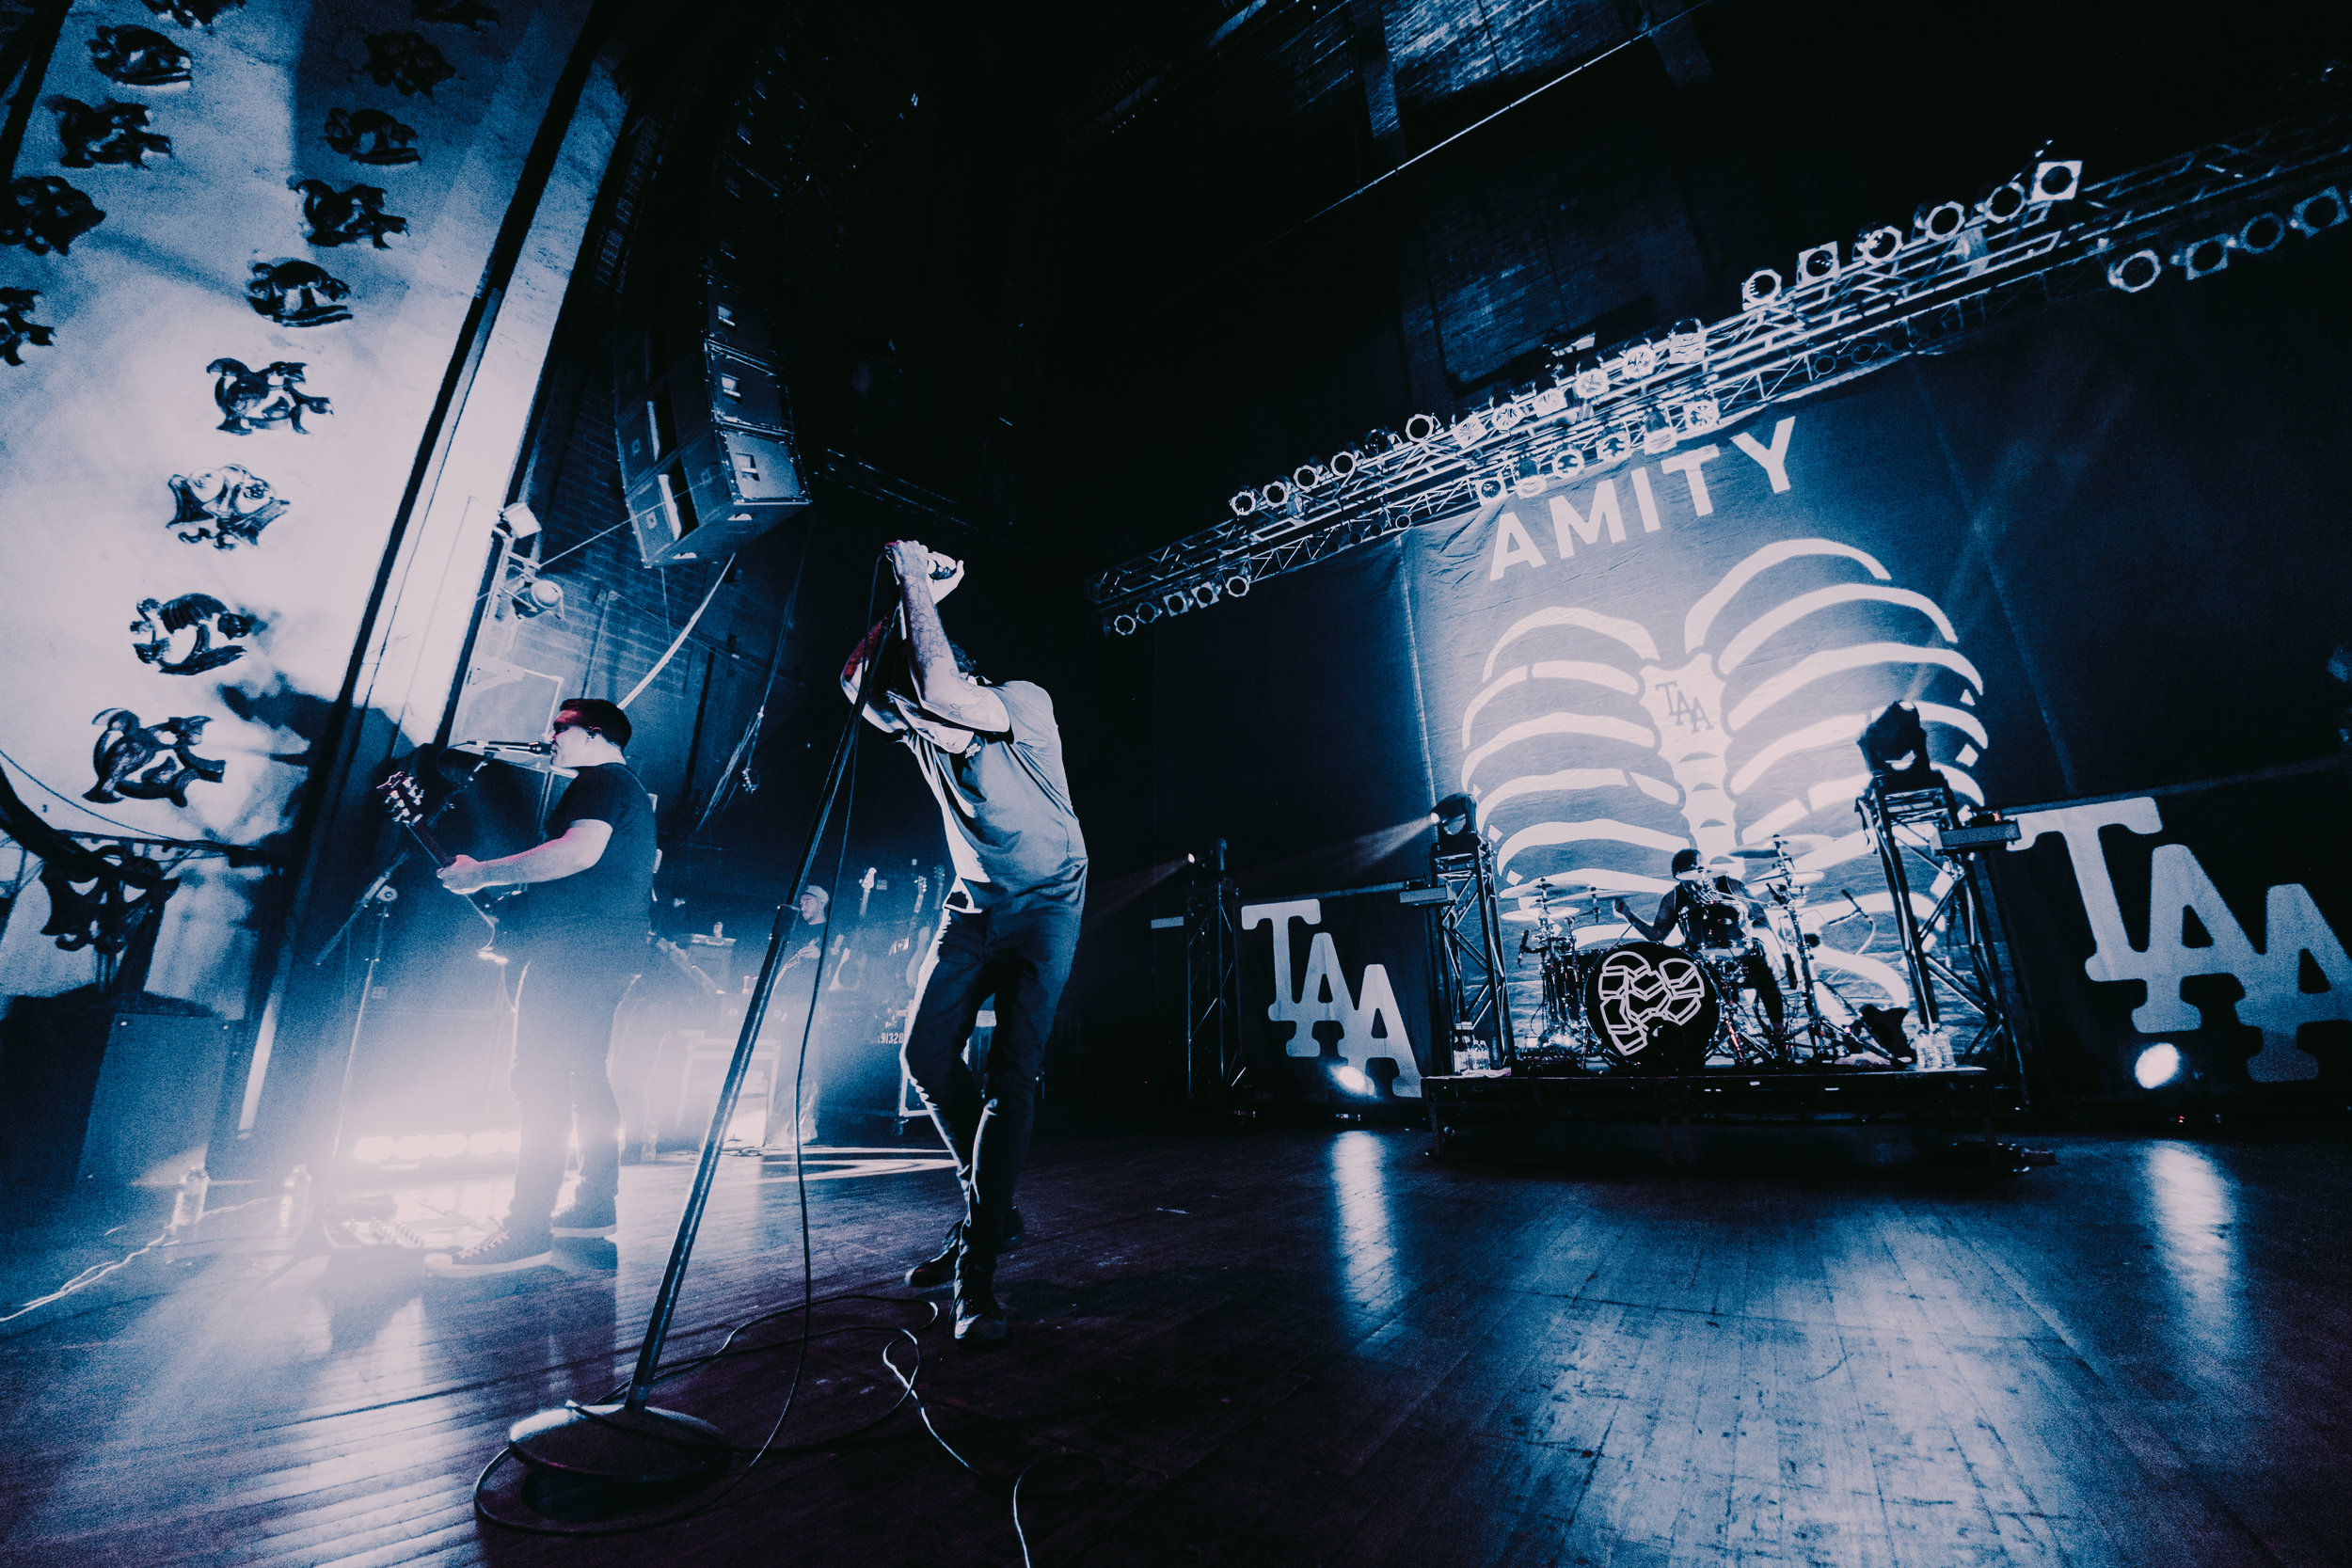 The Amity Affliction - 9.15.2016 // When I was shooting this show, I actually had to pause for a second and appreciate what I was doing. The Amity Affliction's music holds a lot of meaning to me, so I was extremely grateful to be photographing them.